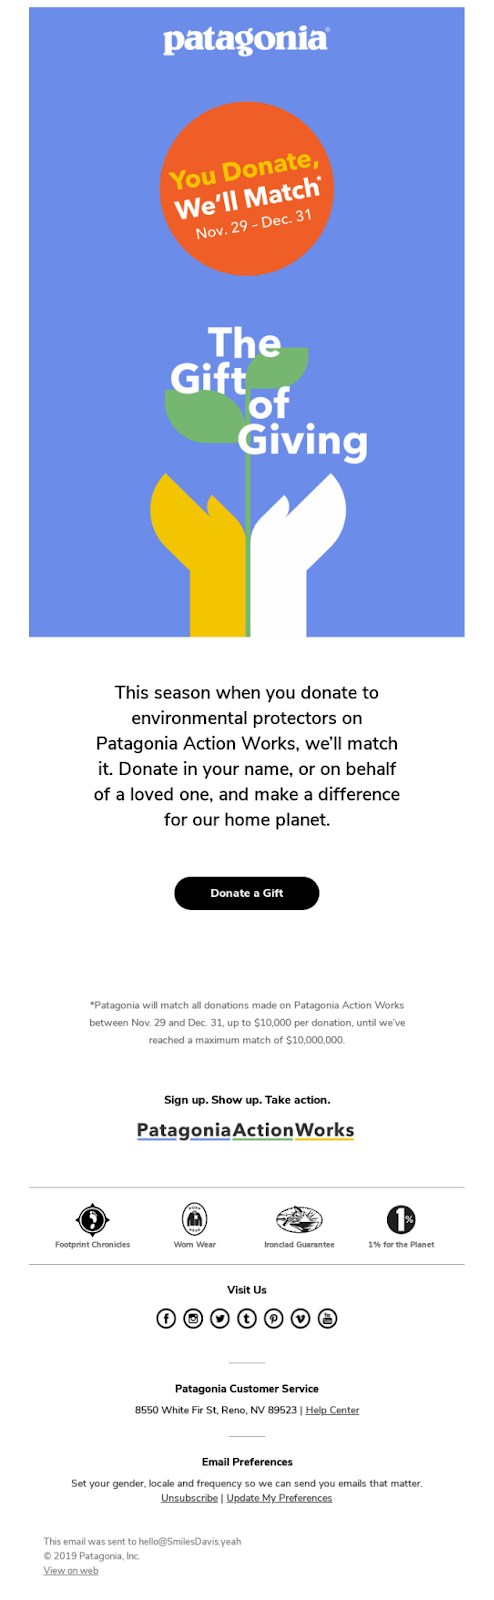 Giving campaign from Patagonia